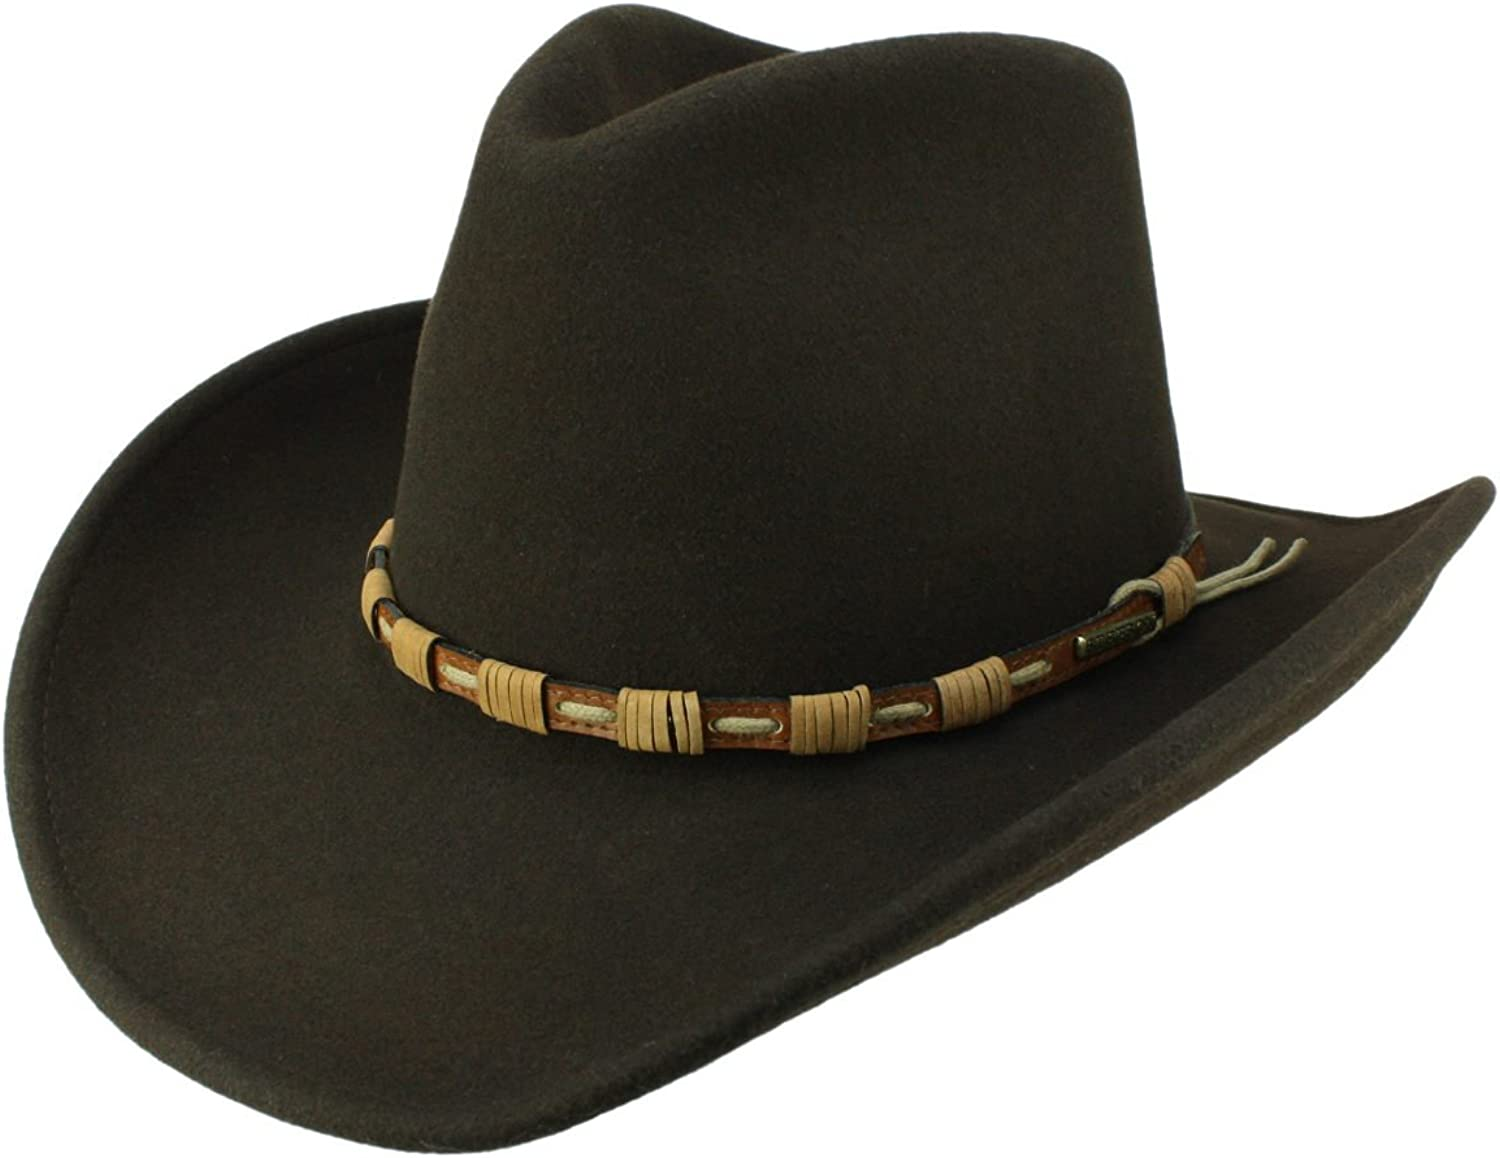 Stetson Men's Cowboy Hat Keeline brown